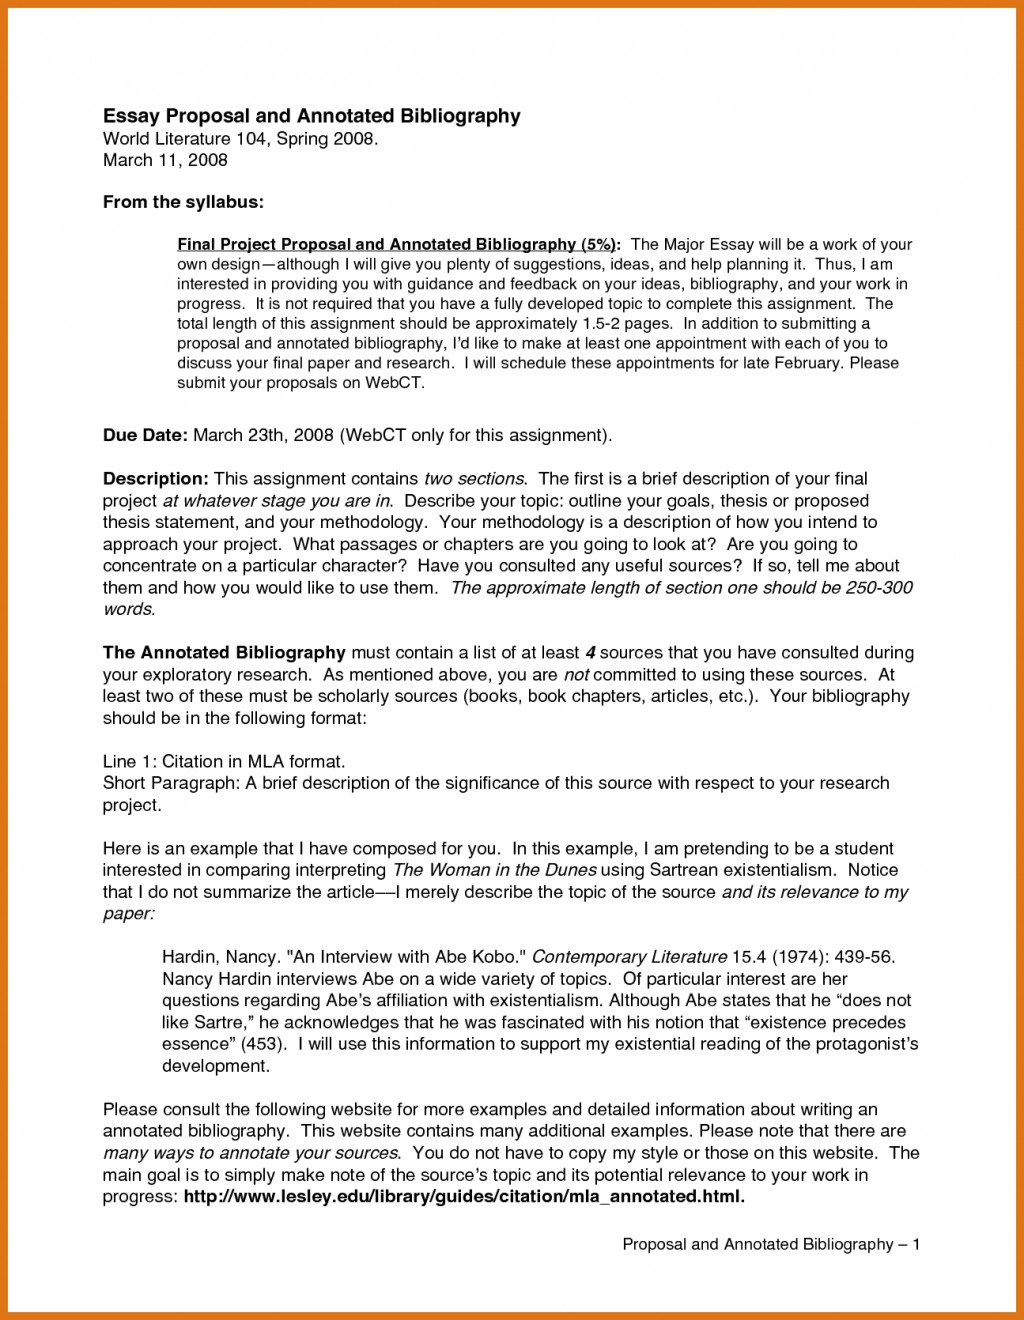 025 Essay Example How To Cite Articles In Bunch Ideas Of Chicago Style Essays Citation Sources Mlaormat Excellent Bibliography Sampleor Research Paper Singular Article Title Text Apa A Quote From An Internet News Large